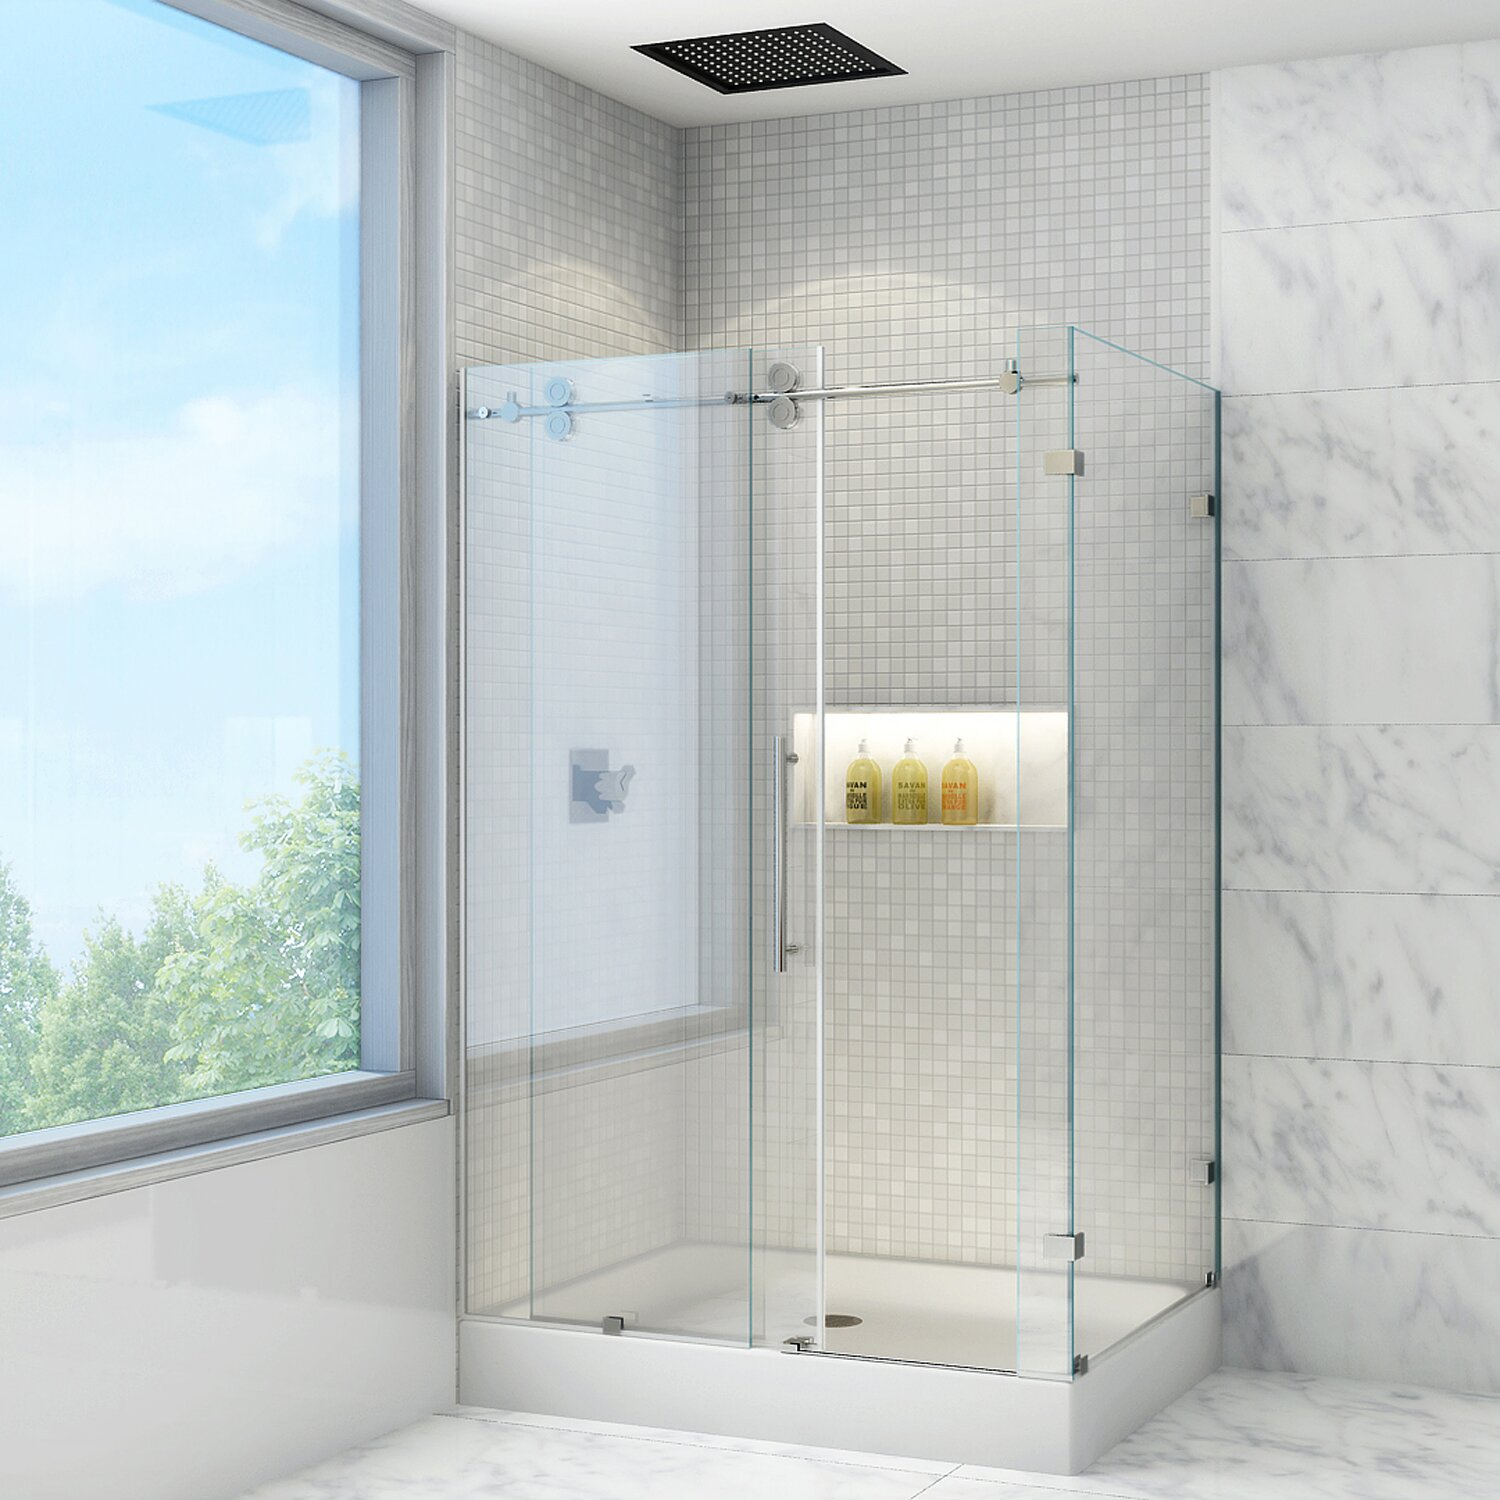 Vigo Winslow 36 X 48-in. Frameless Sliding Shower